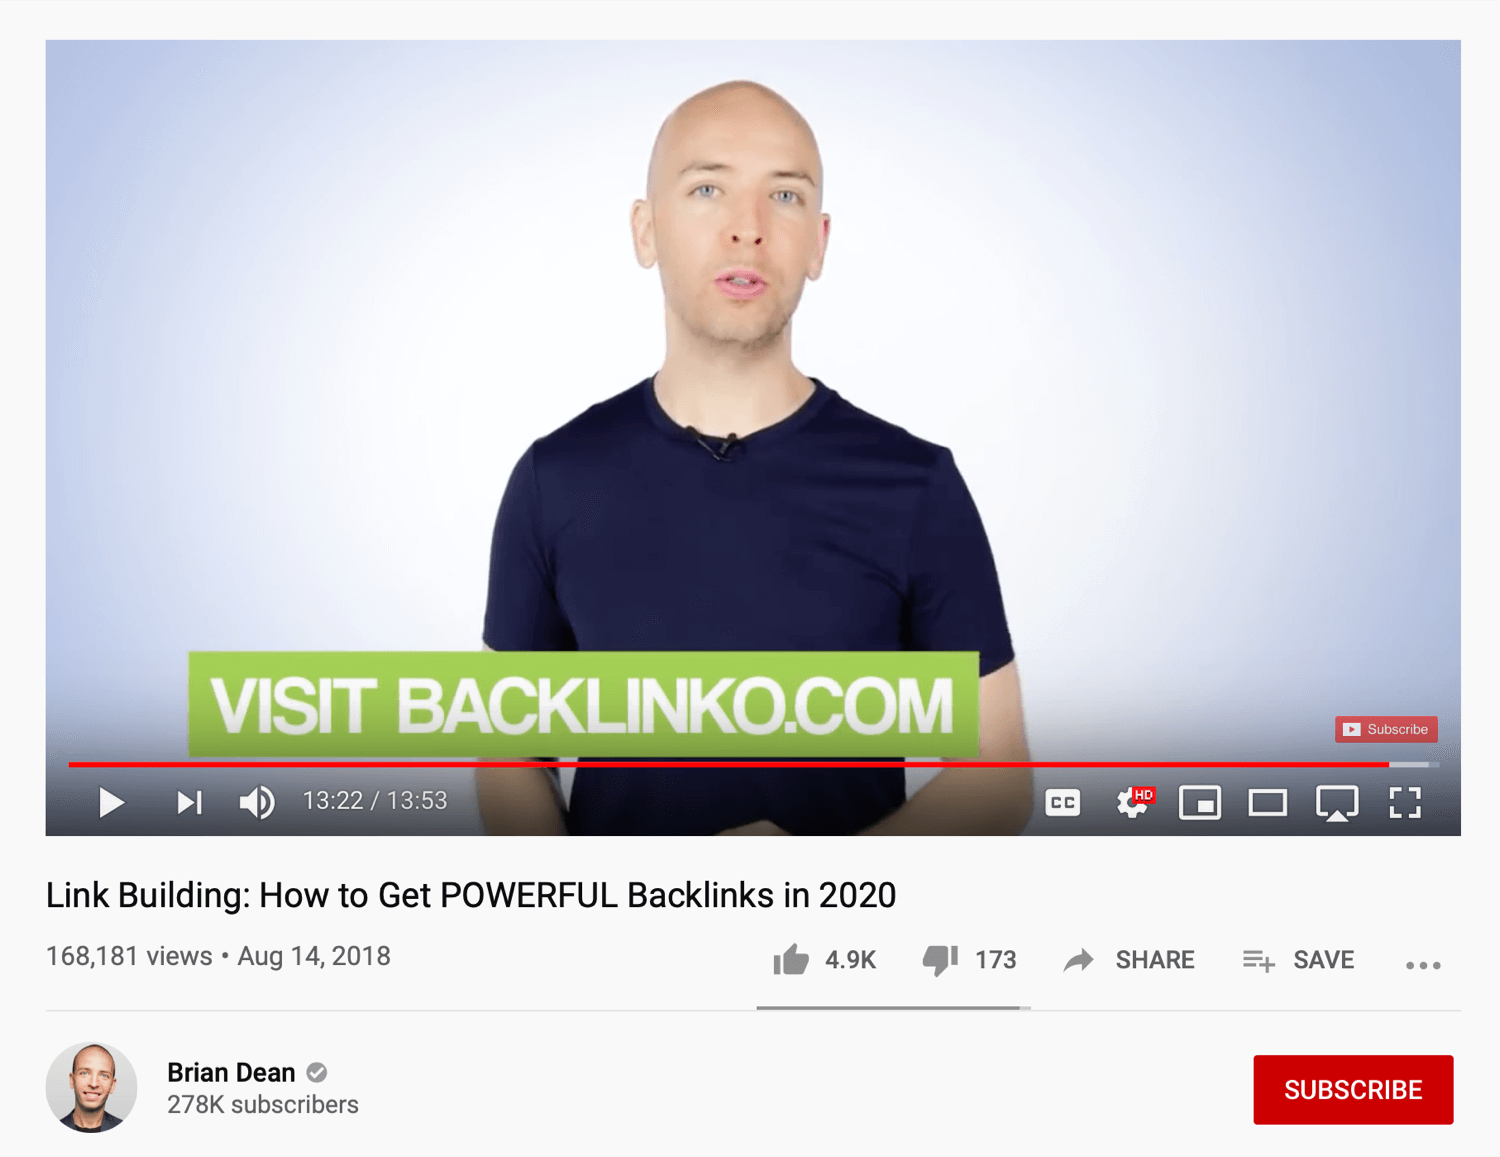 example of YouTube video asking viewers to sign up for newsletter